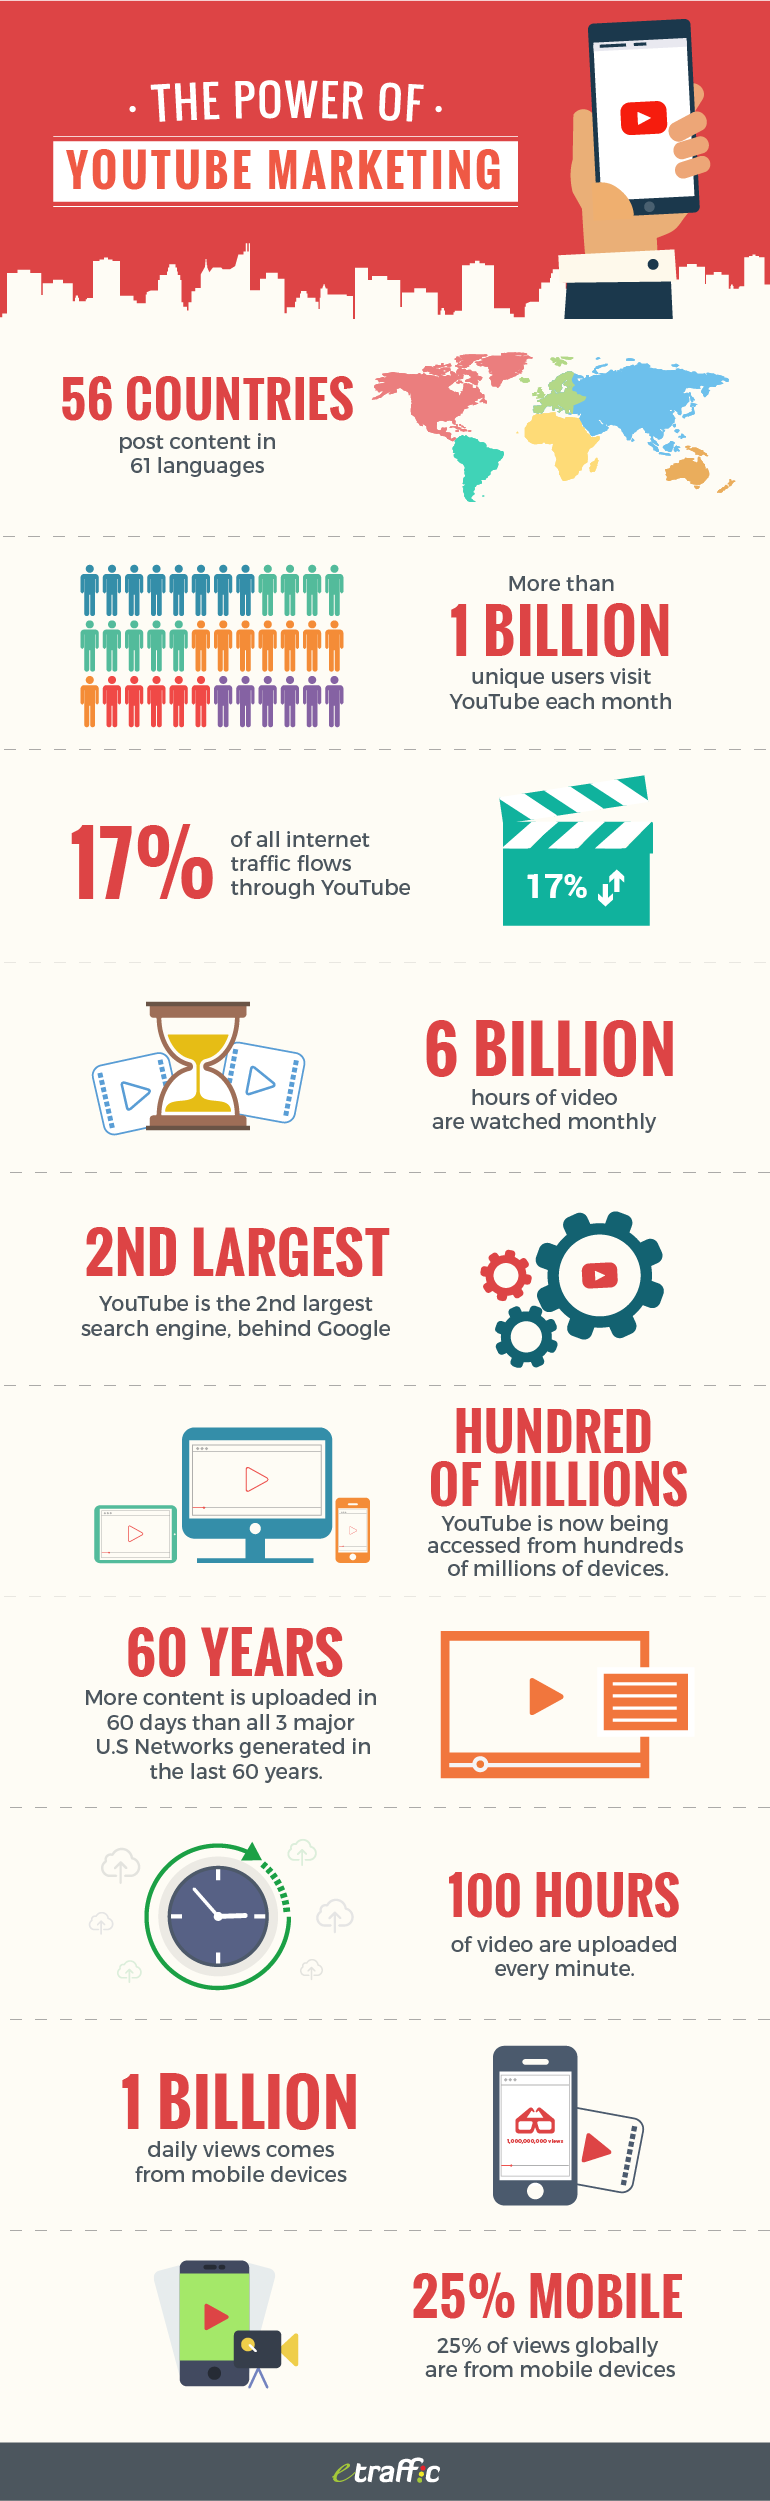 The-Power-of-Youtube-Marketing-infographic-plaza